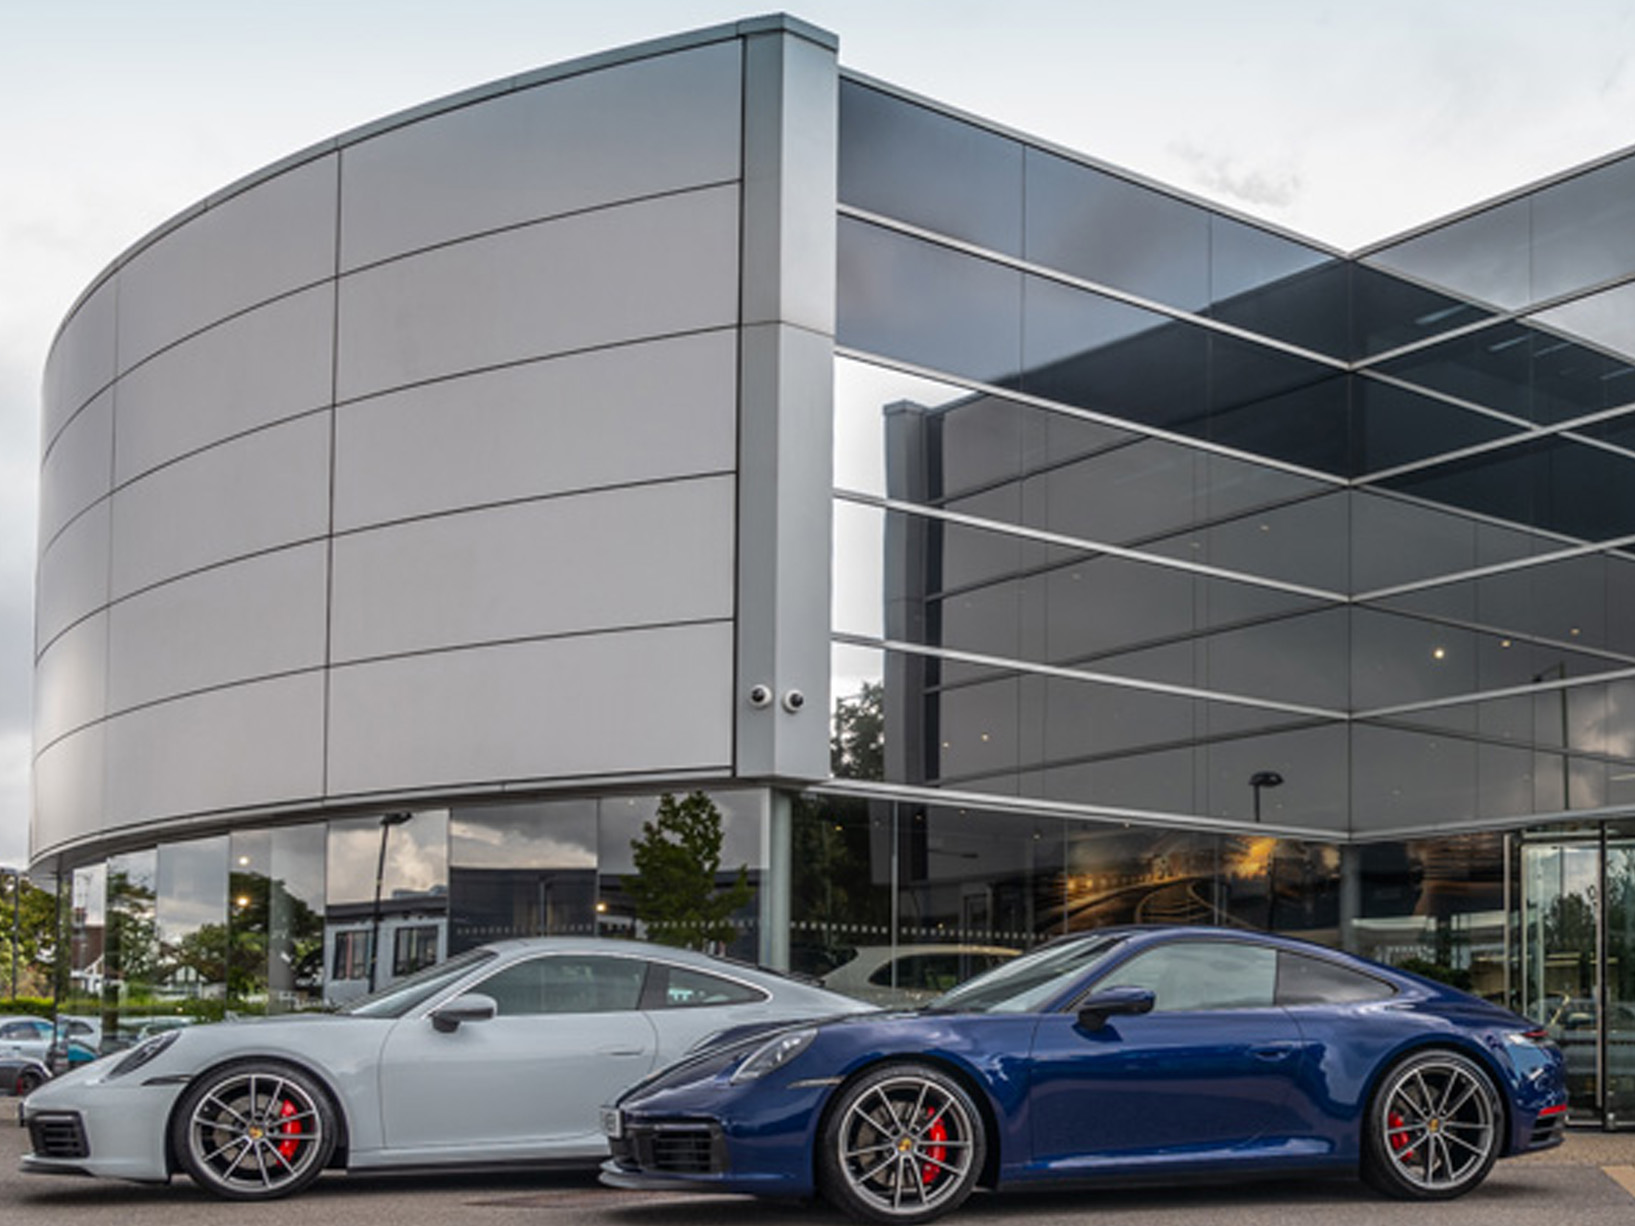 Search Porsche Retail Group Approved Pre-Owned cars